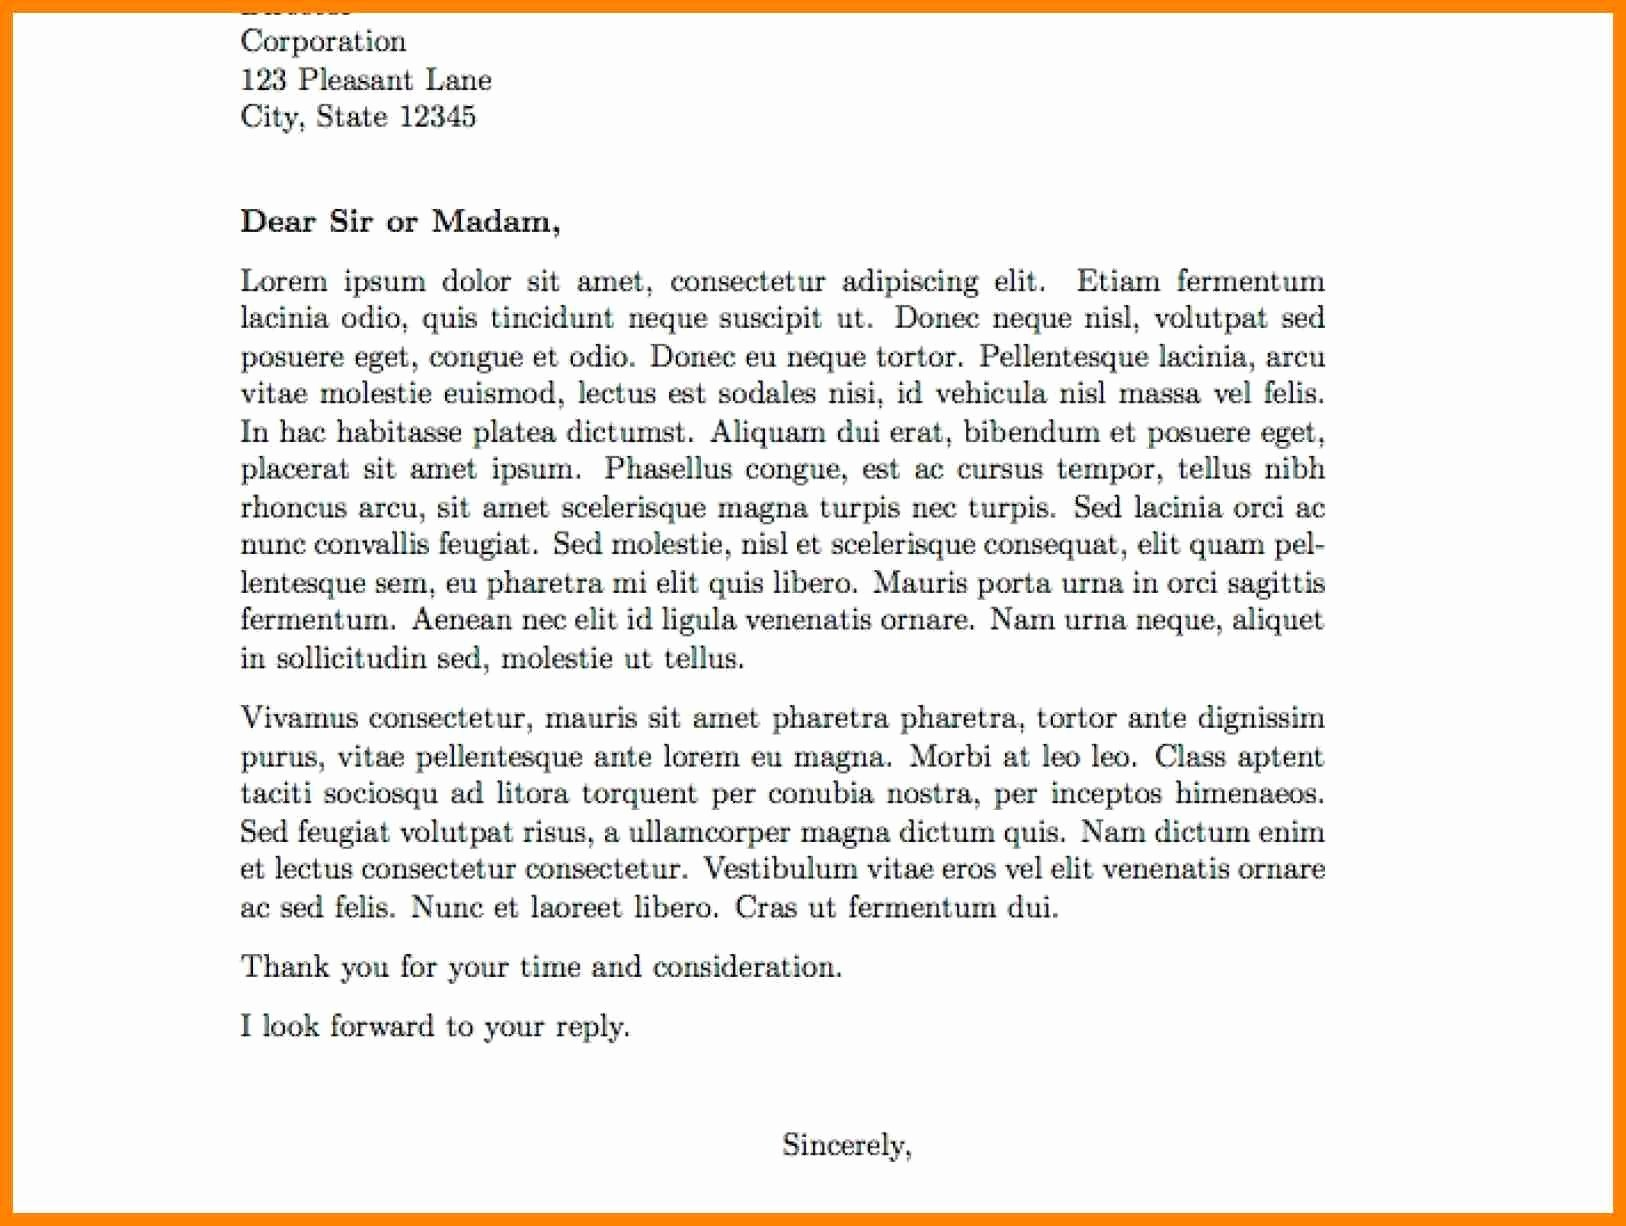 Mission Trip Donation Letter Elegant Mission Trip Fundraising Letter Template Collection